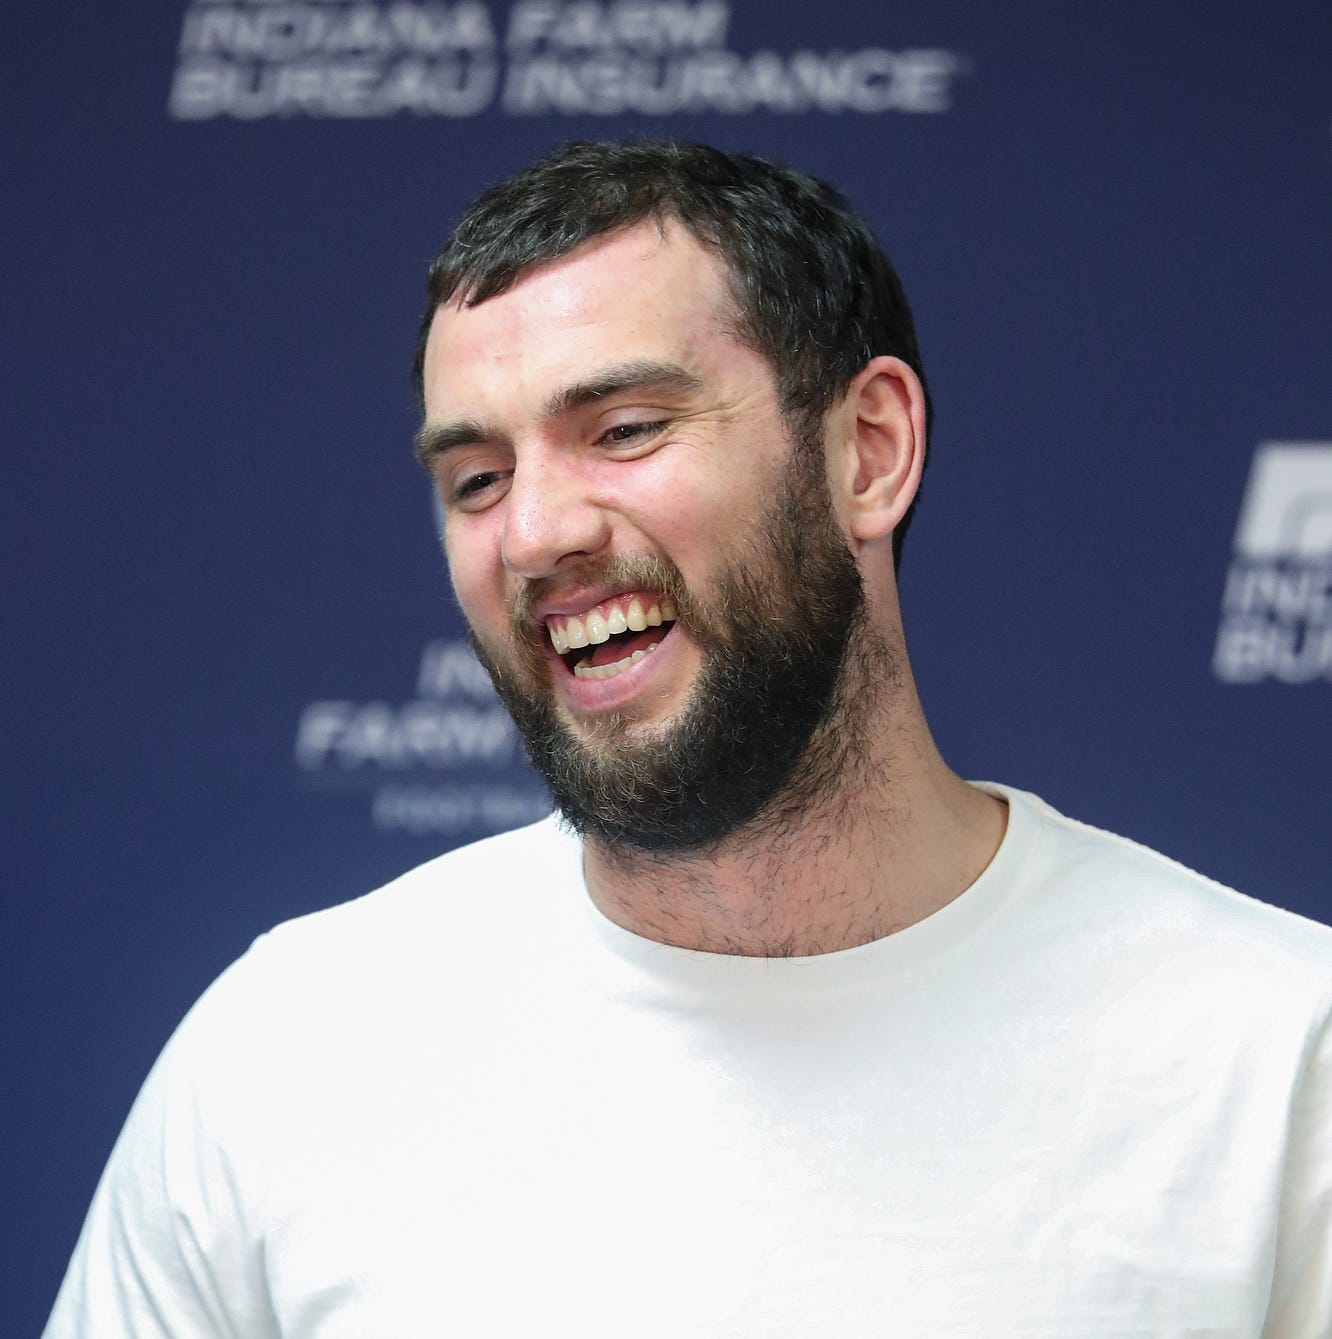 Finally able to rest and refresh, Andrew Luck is ready to get back into the zone